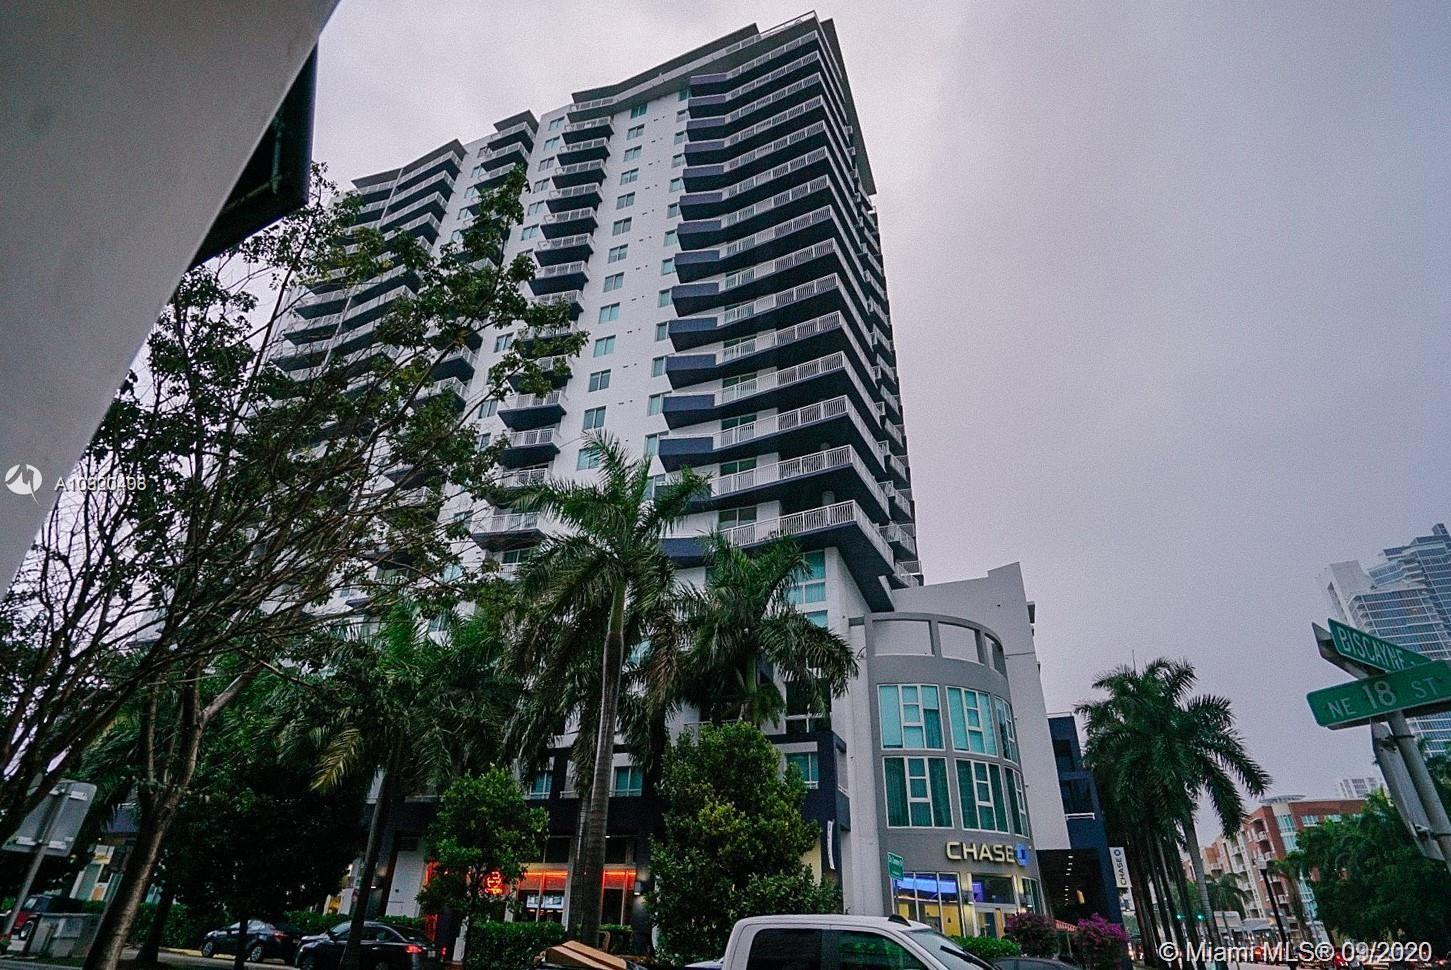 1800 Biscayne Plaza #1405 - 275 NE 18th St #1405, Miami, FL 33132